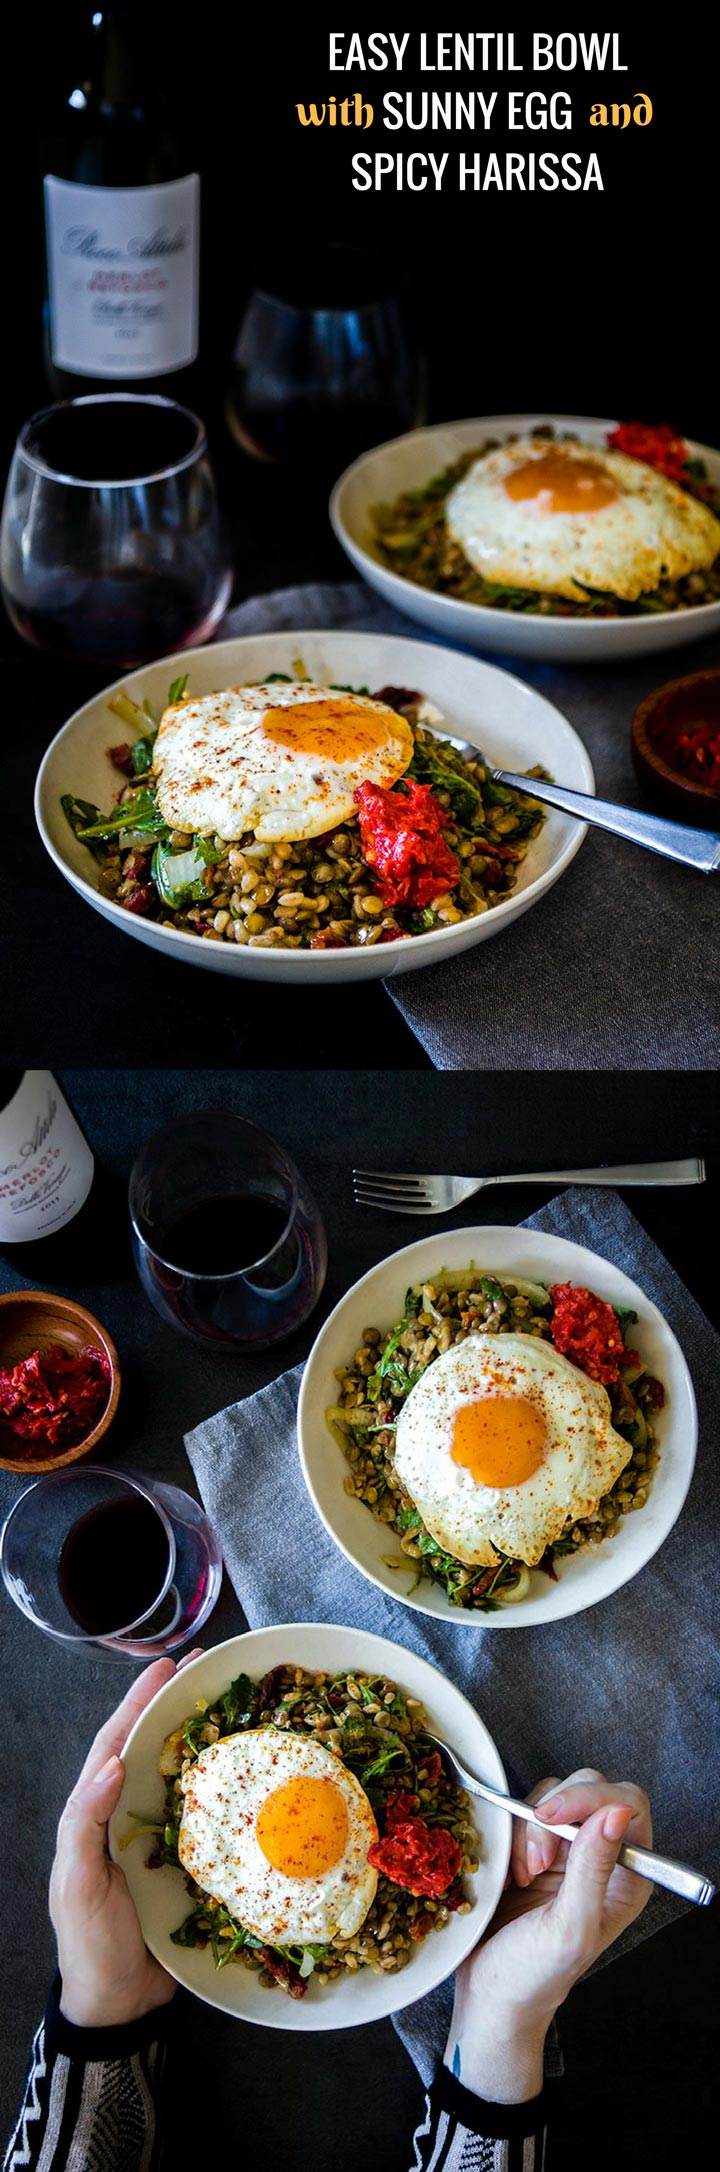 Easy Lentil Bowl with Sunny Egg & Harissa, a simple lentil bowl with farro, onion, arugula and sun dried tomatoes topped with a sunny egg and spicy harissa.